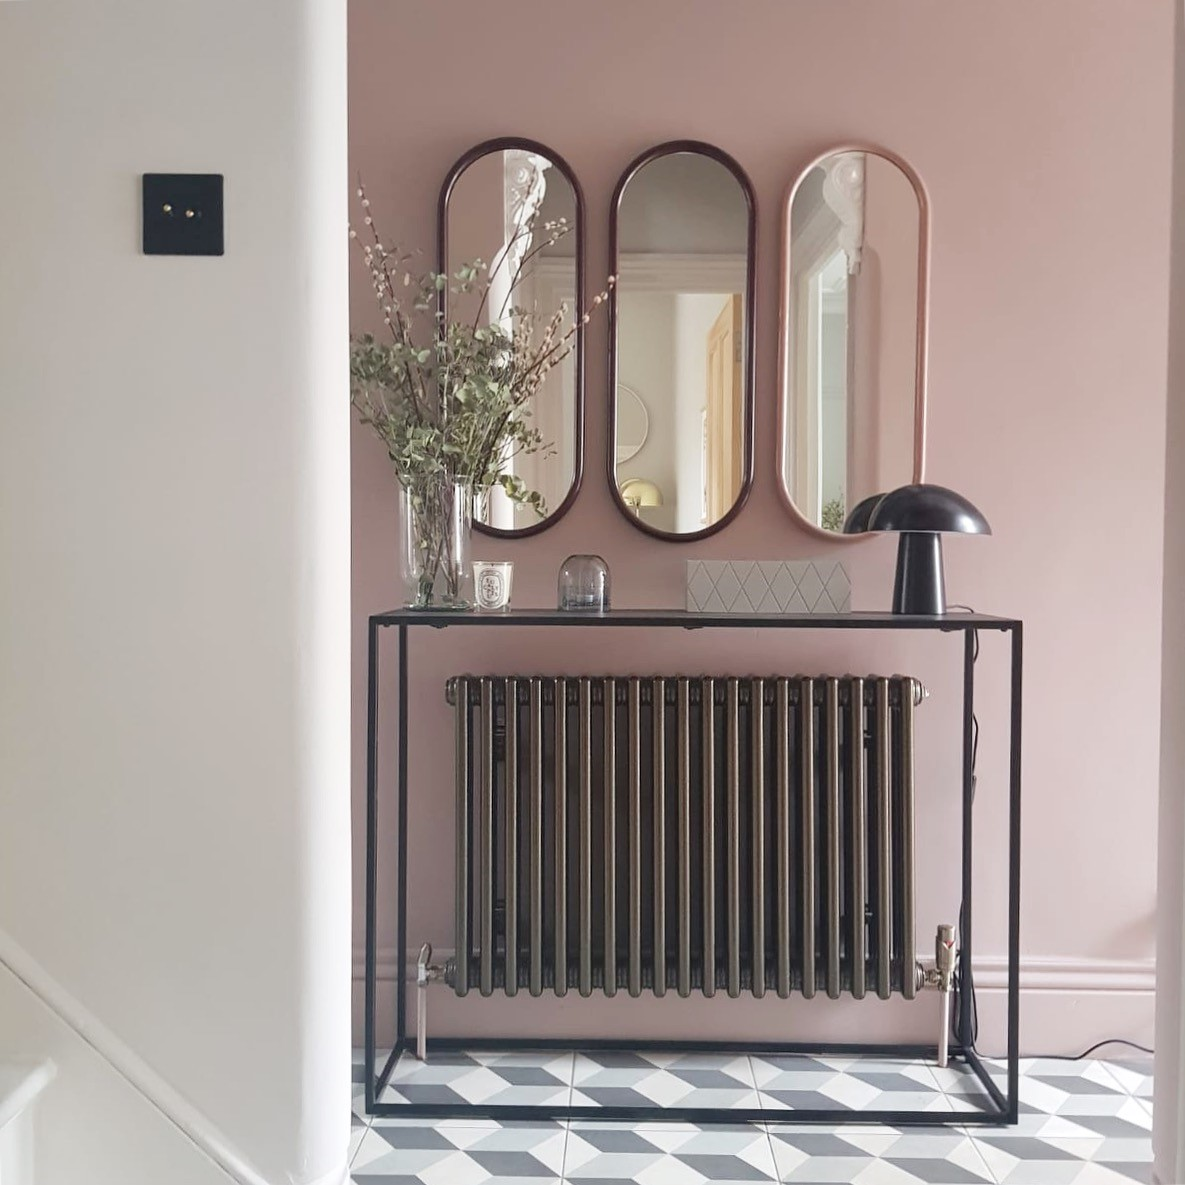 These mirrors are by AYTM and can be found at  Amara